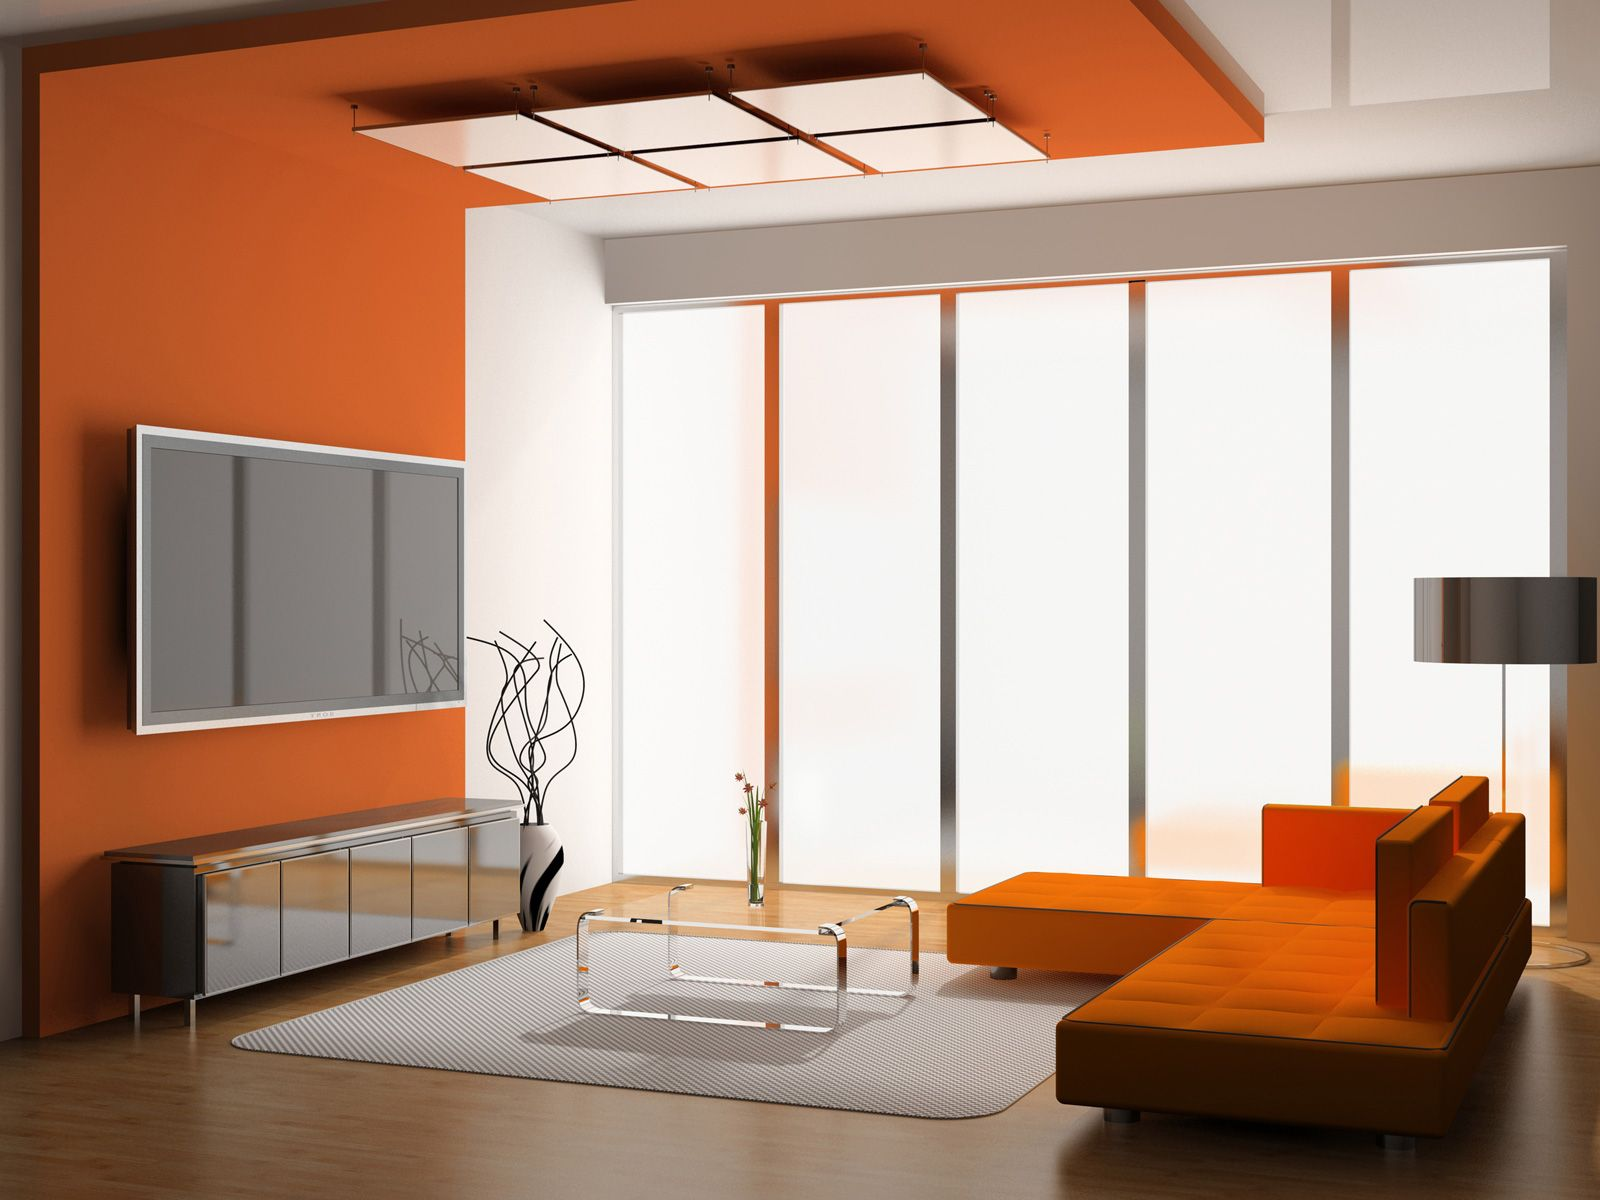 Modern Bold Orange Living Room Get The Look With Dunn Edwards